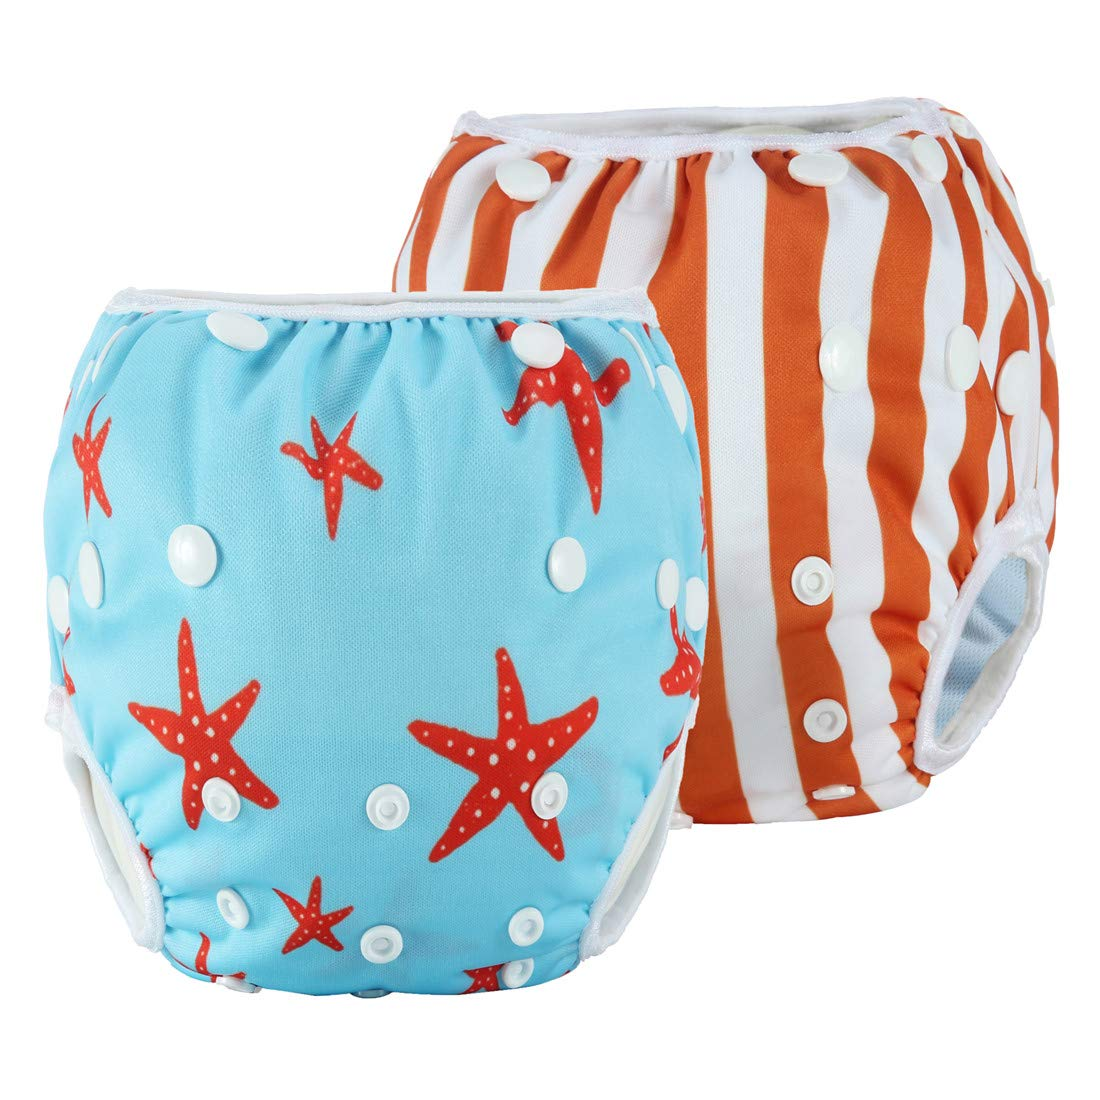 b1f8b55cd6 Amazon.com : Anmababy 2 Pack Reusable Swim Diaper, Adjustable and Washable  Ultra-Premium Quality Baby Swim Diapers for Baby Shower Gifts & Infant  Swimming ...